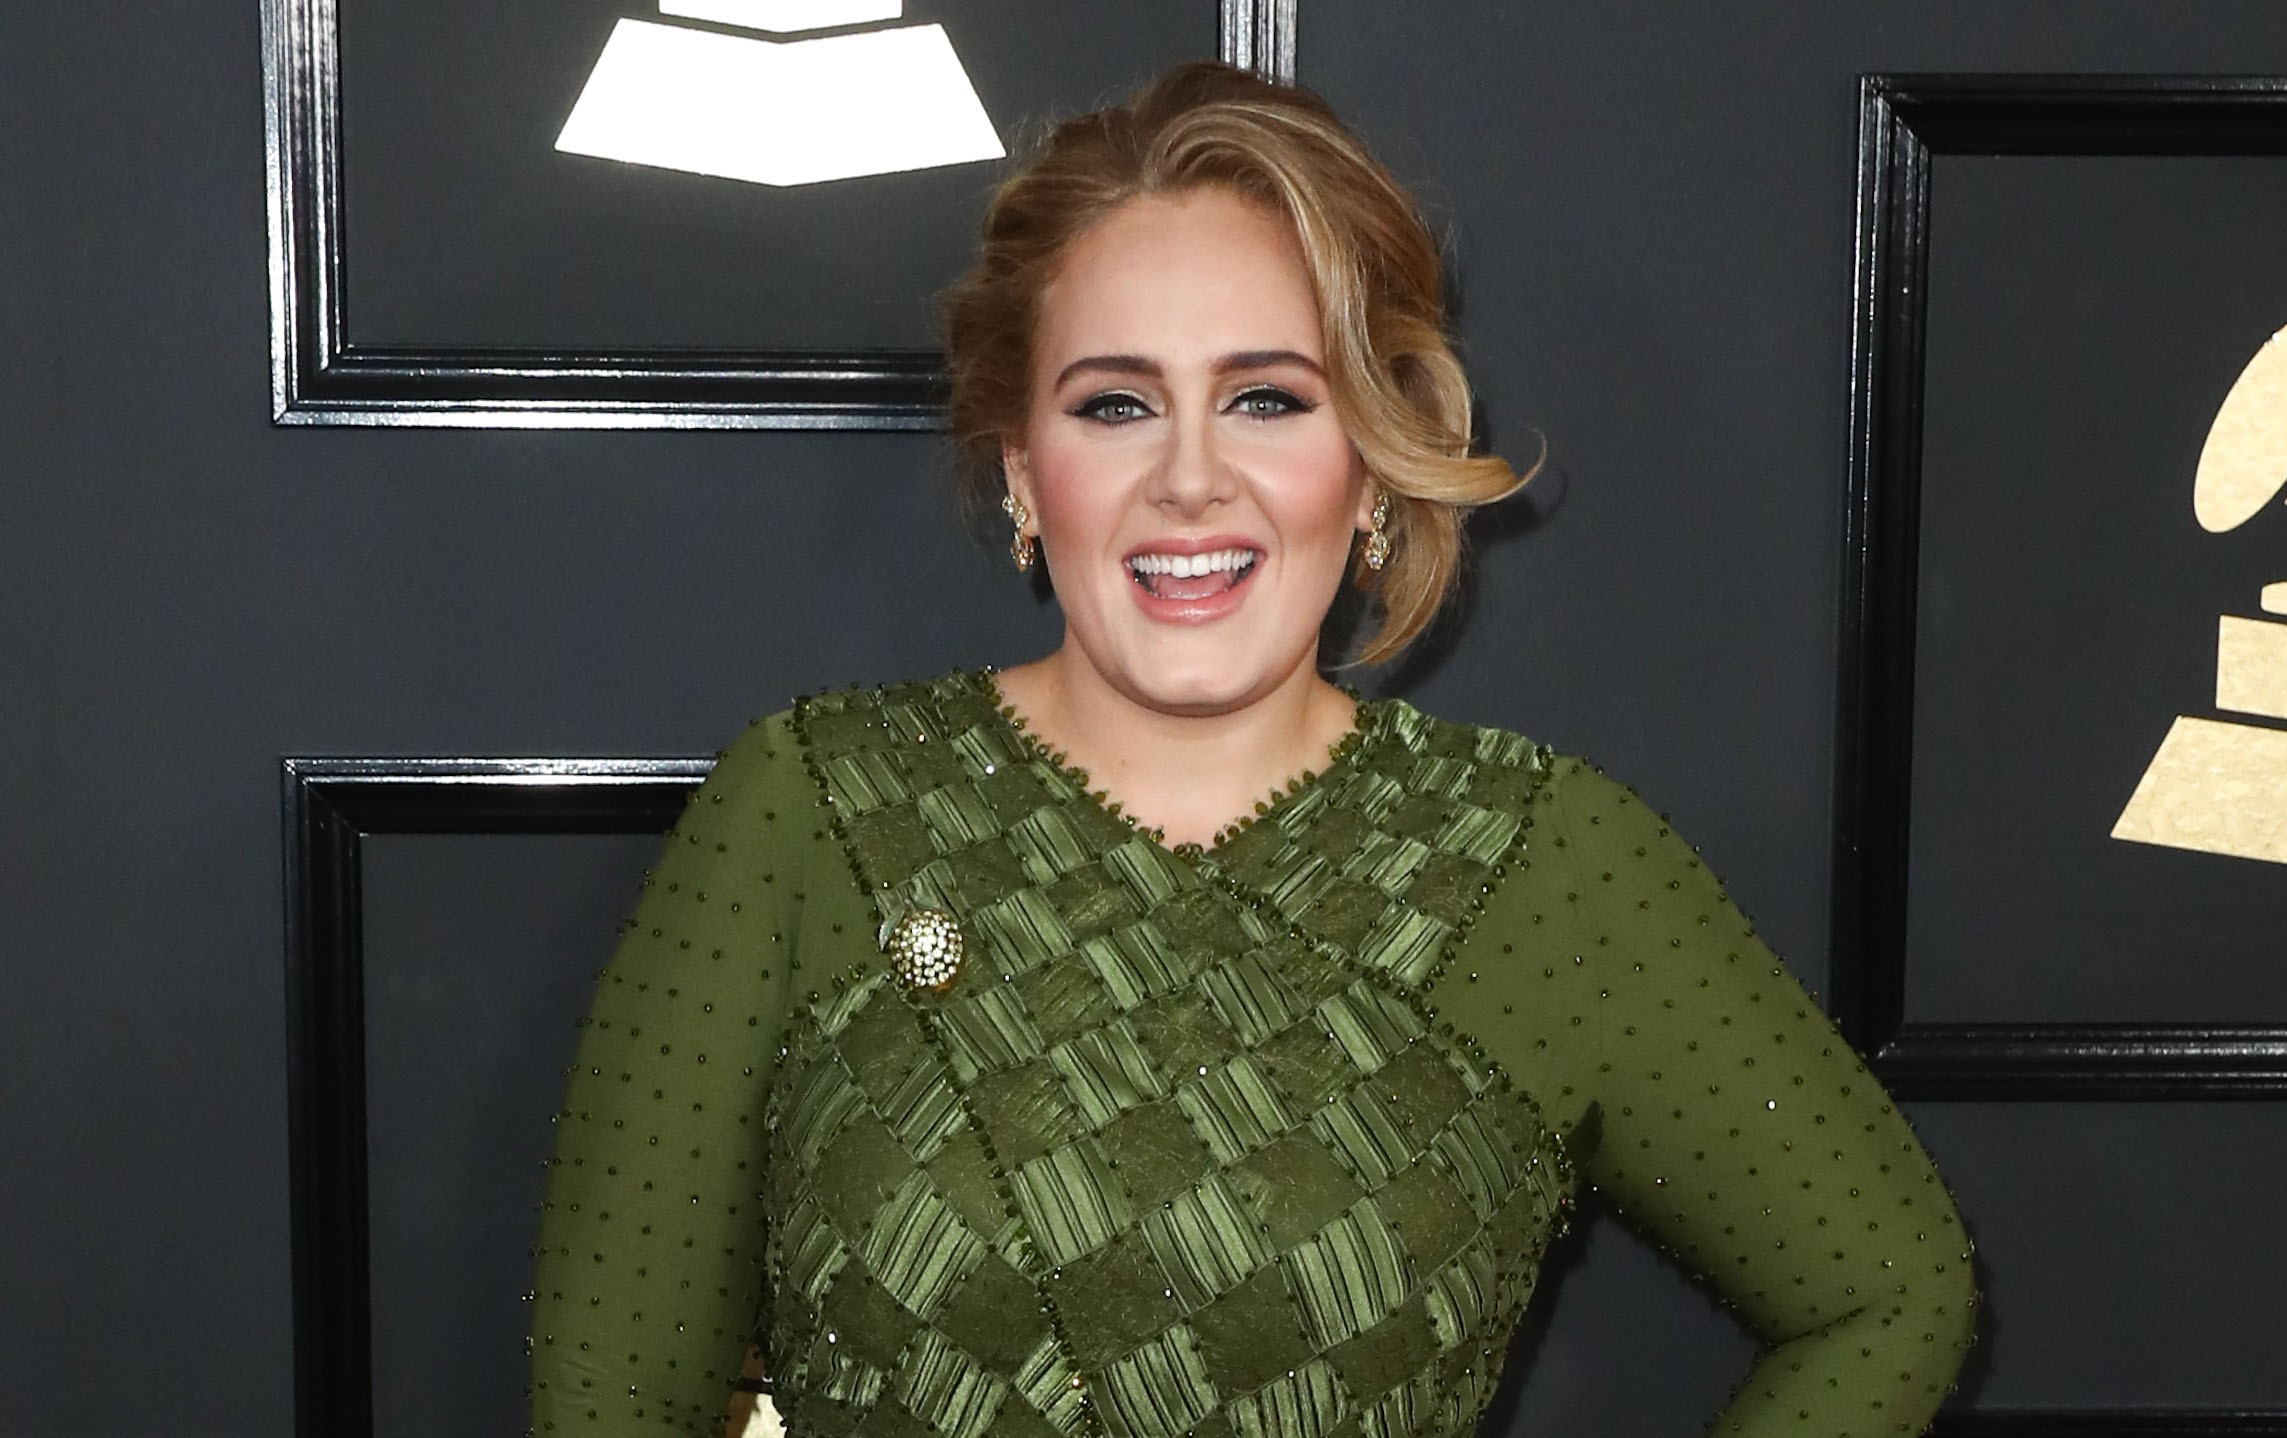 Adele shows off new look after wowing with weight loss